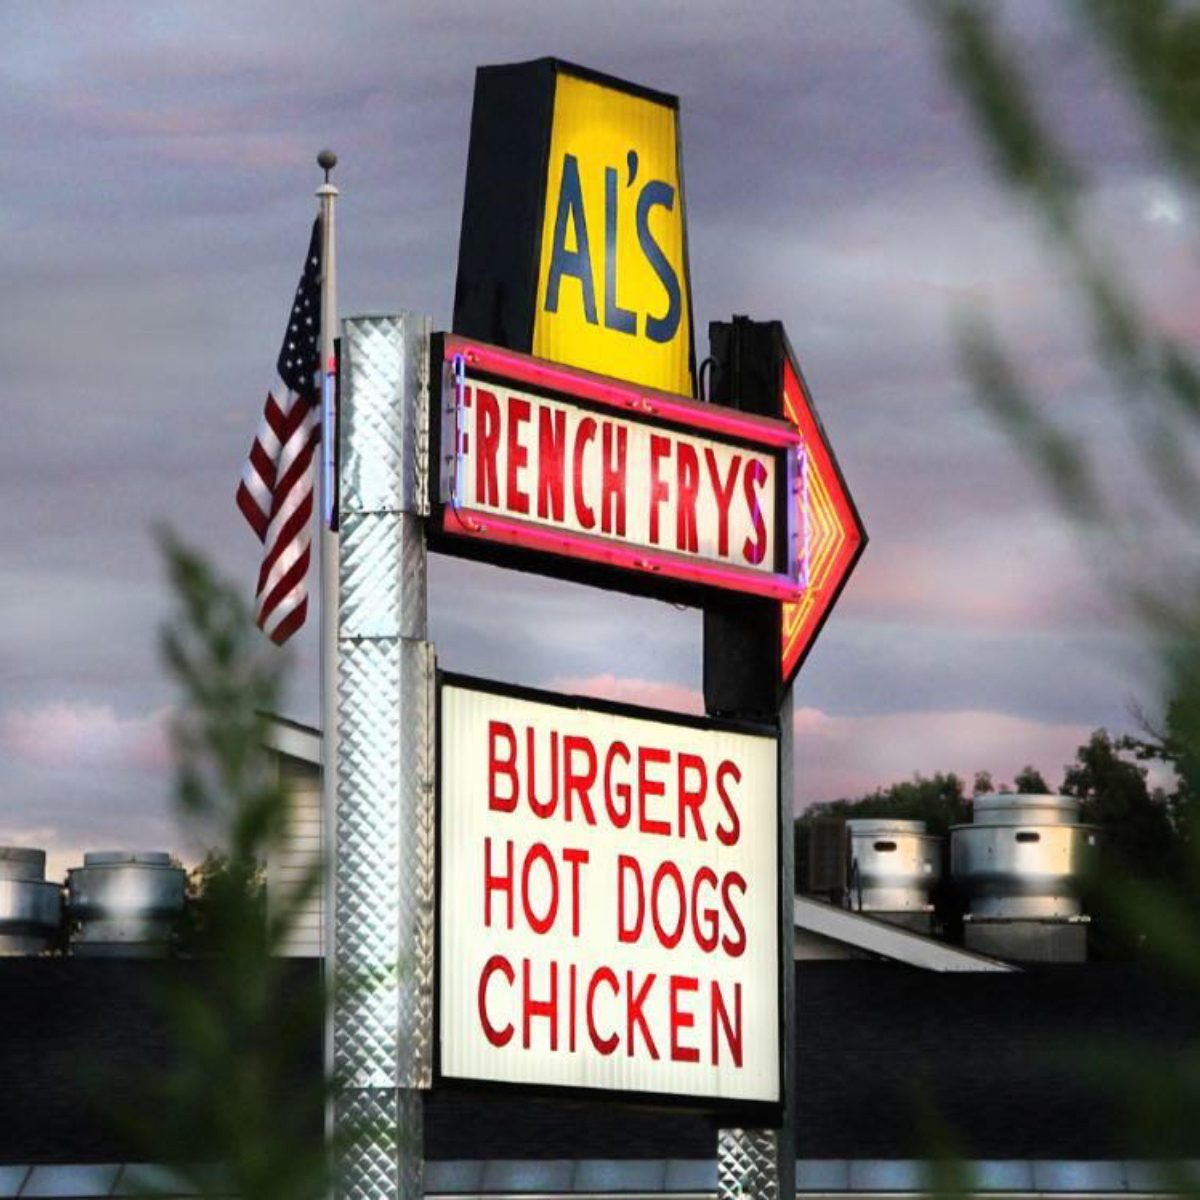 Sign outside for Al's French Frys